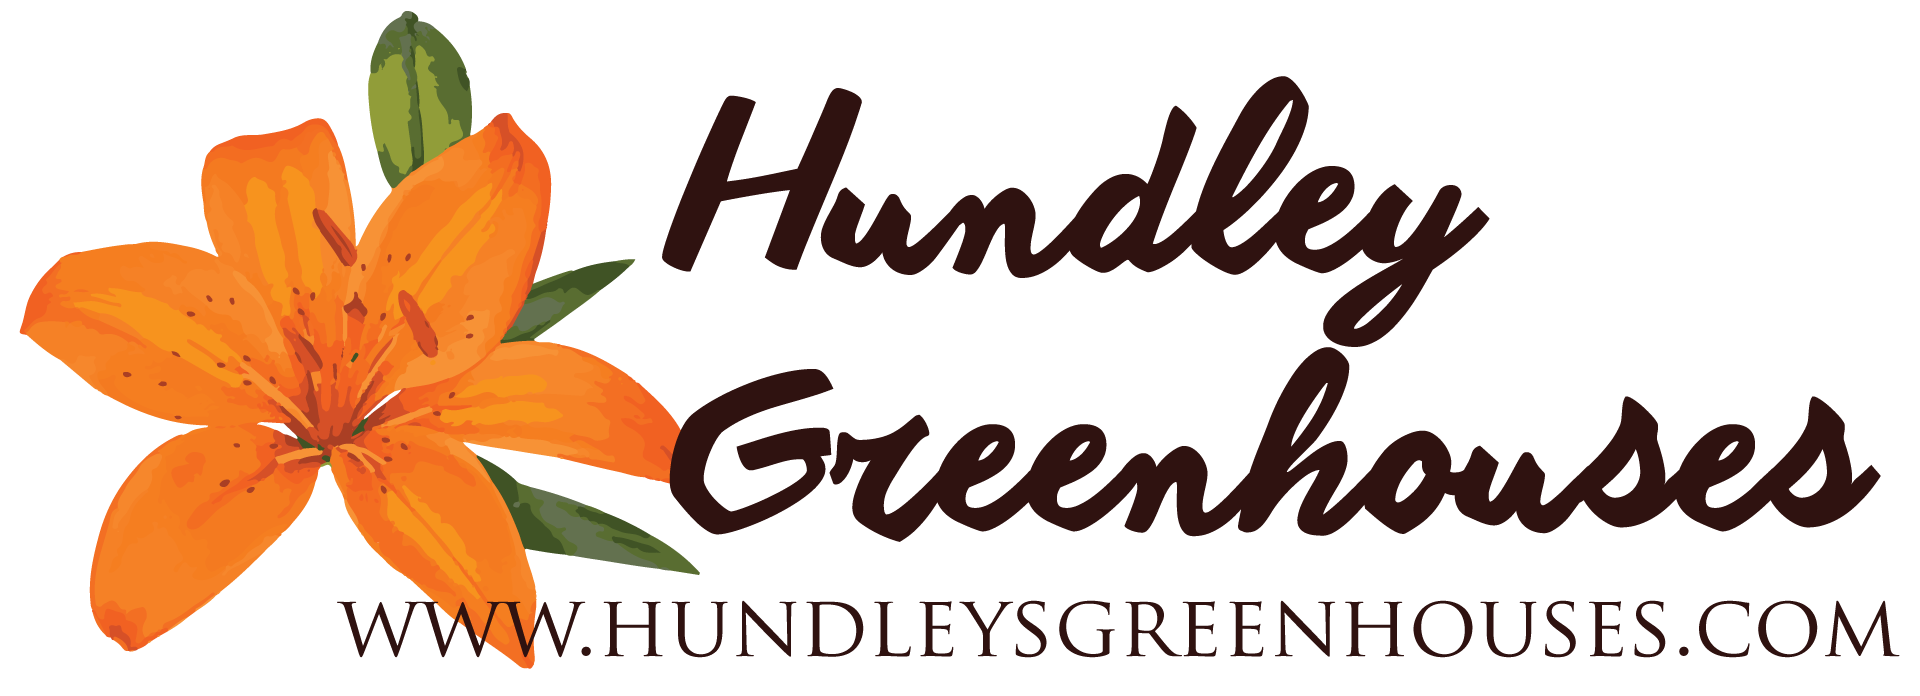 Hundley's Greenhouses